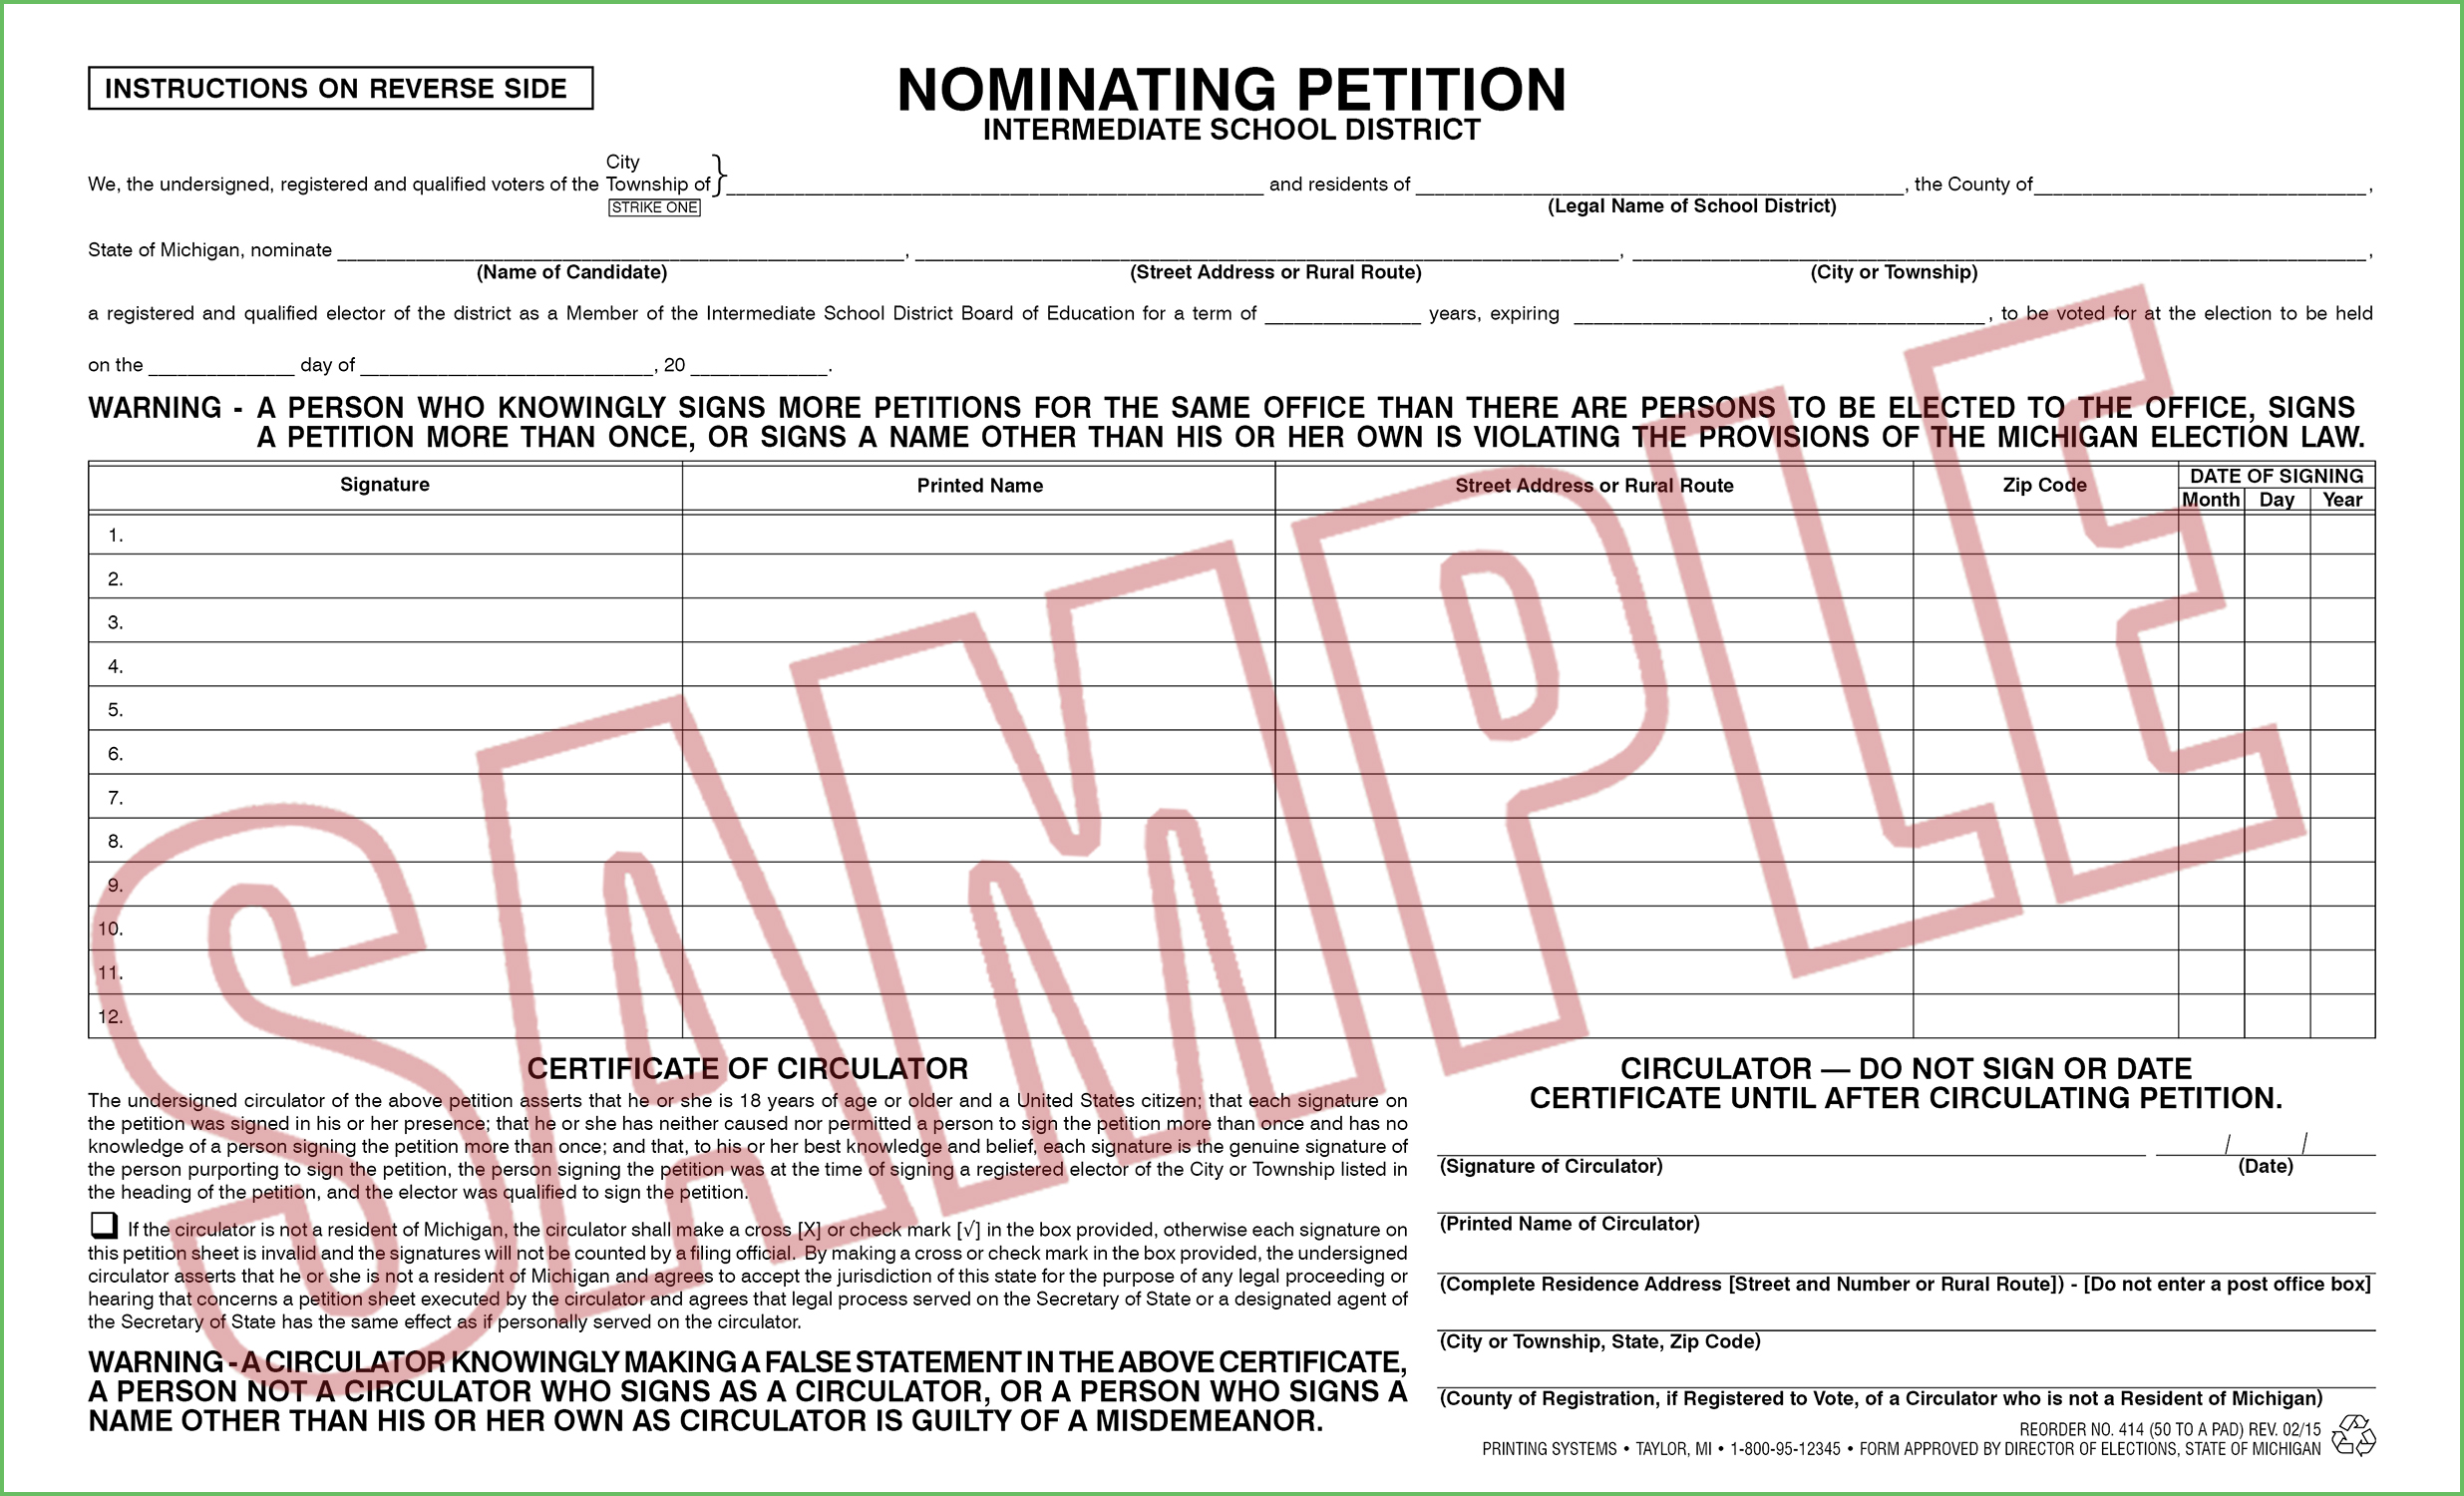 414 Nominating Petition (Intermediate School District) (50 per pad) Rev. 02/15